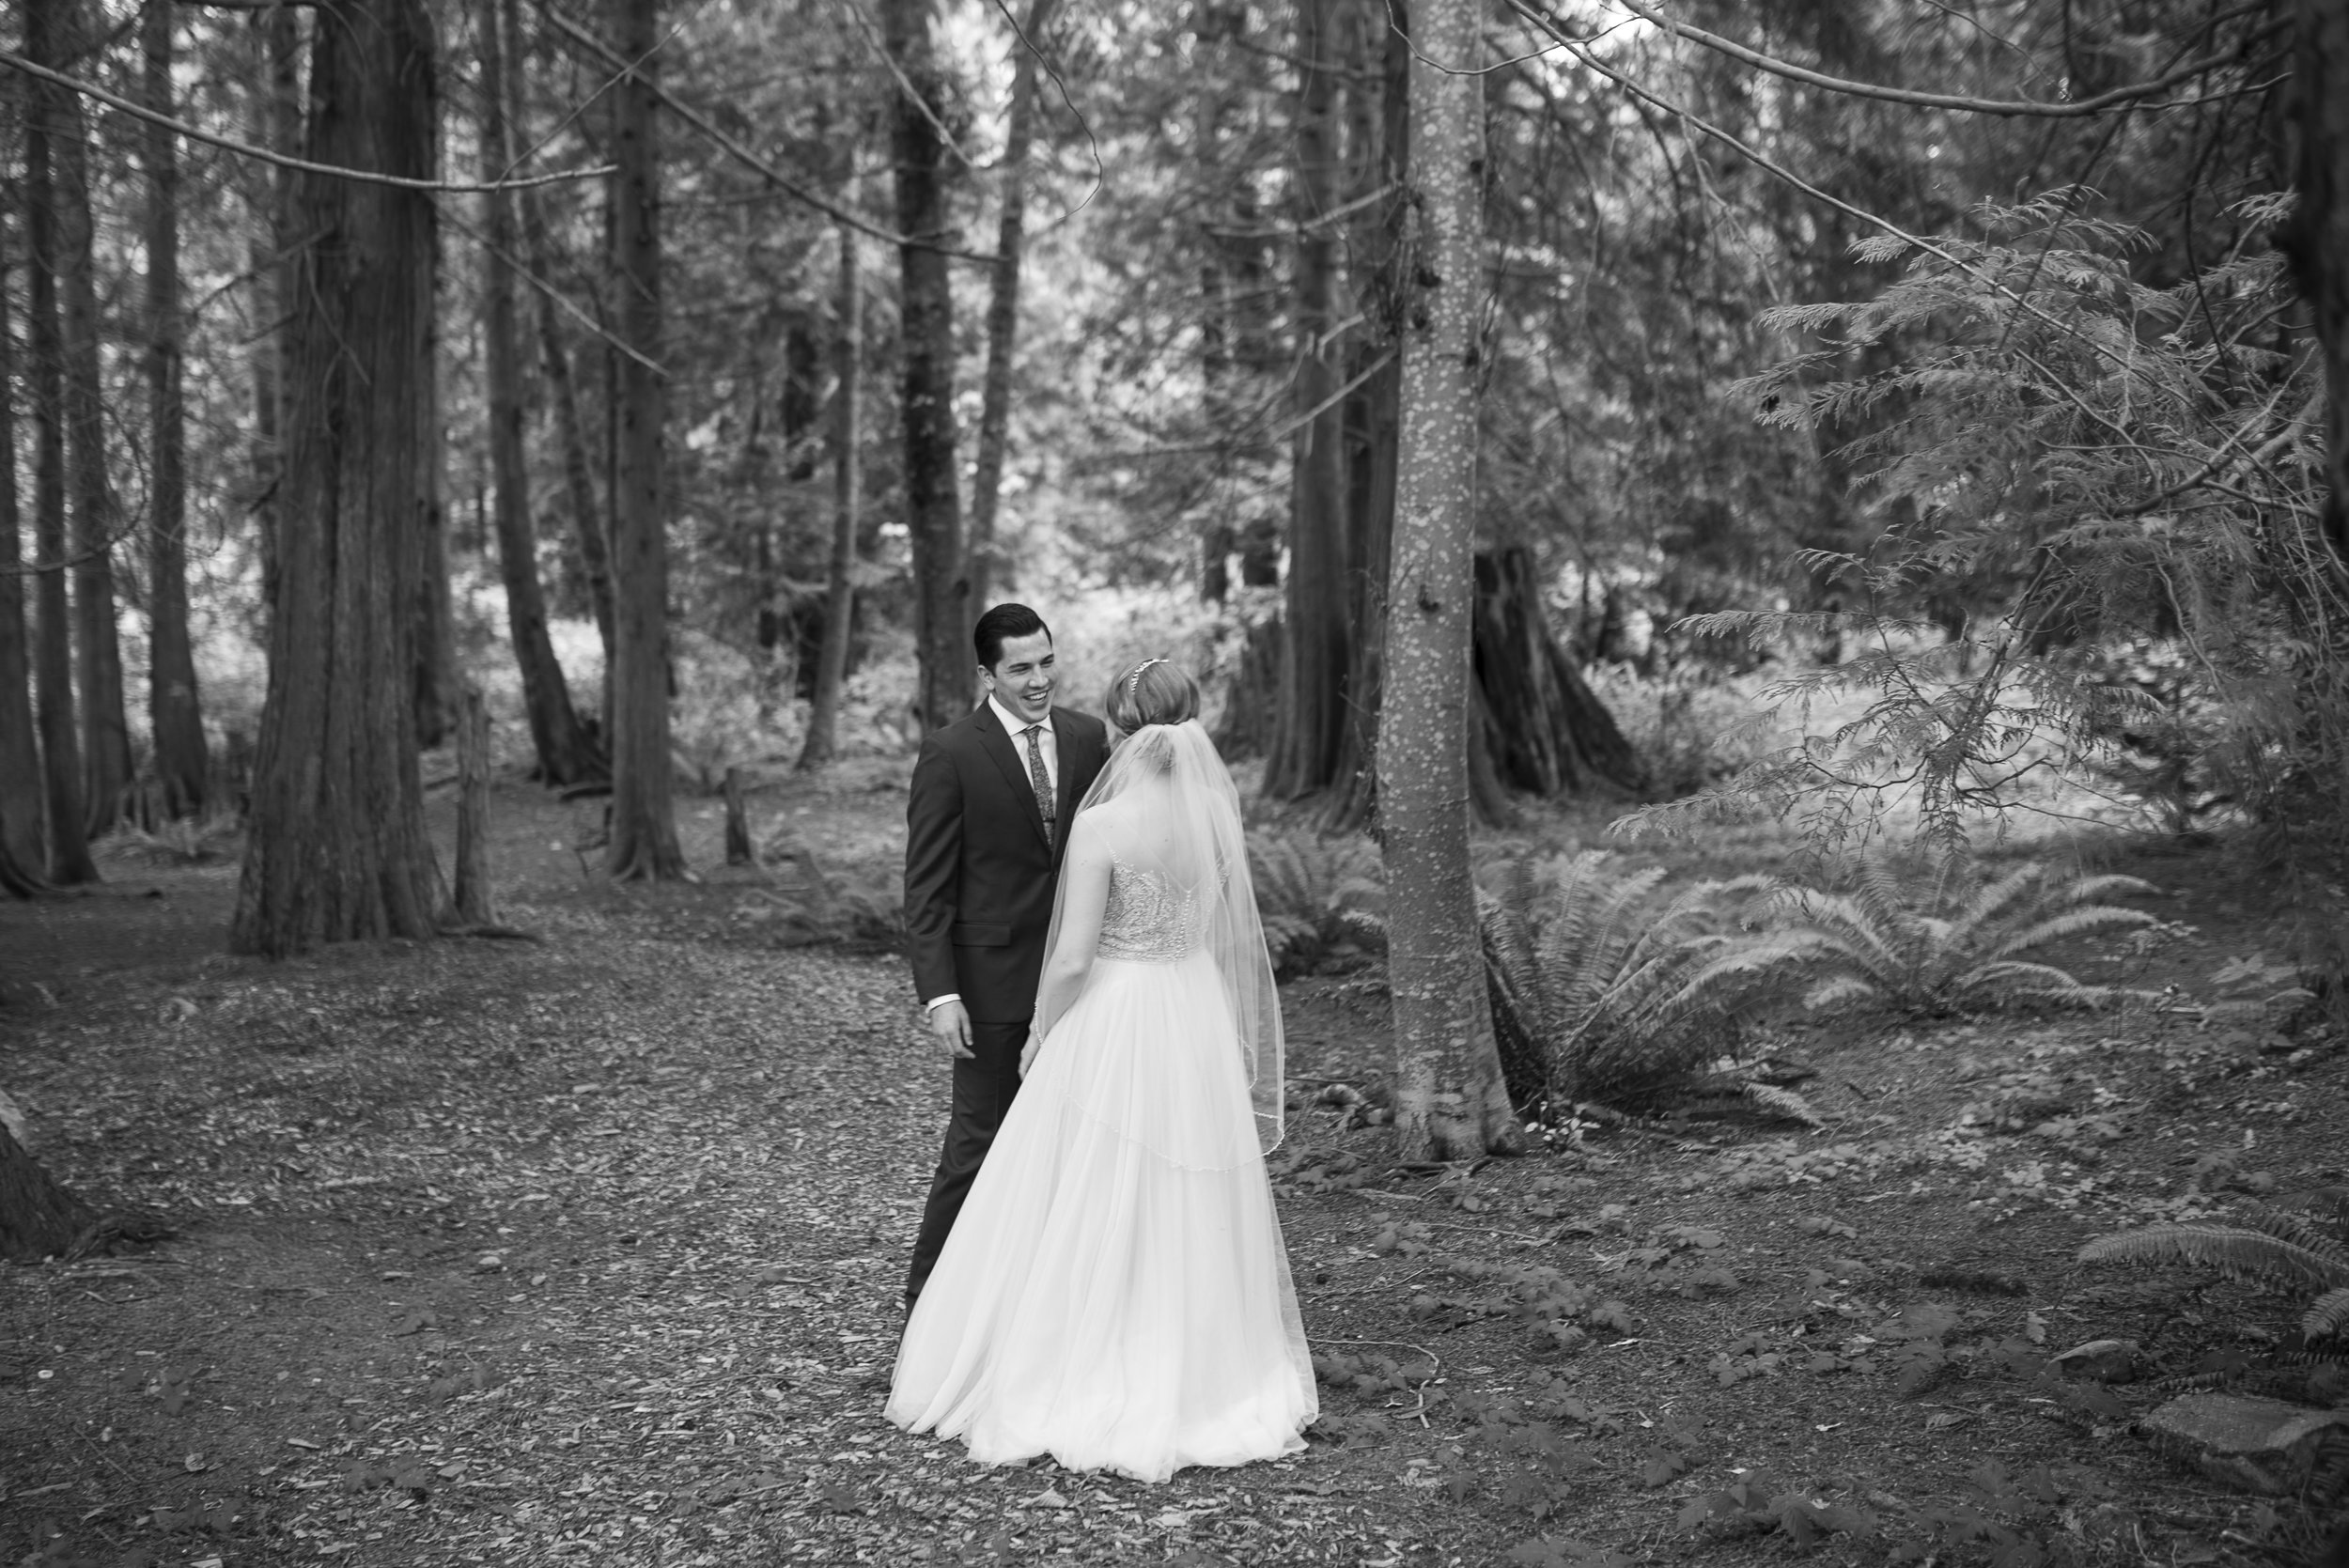 wedding photographer first look photo kristin grover images photo